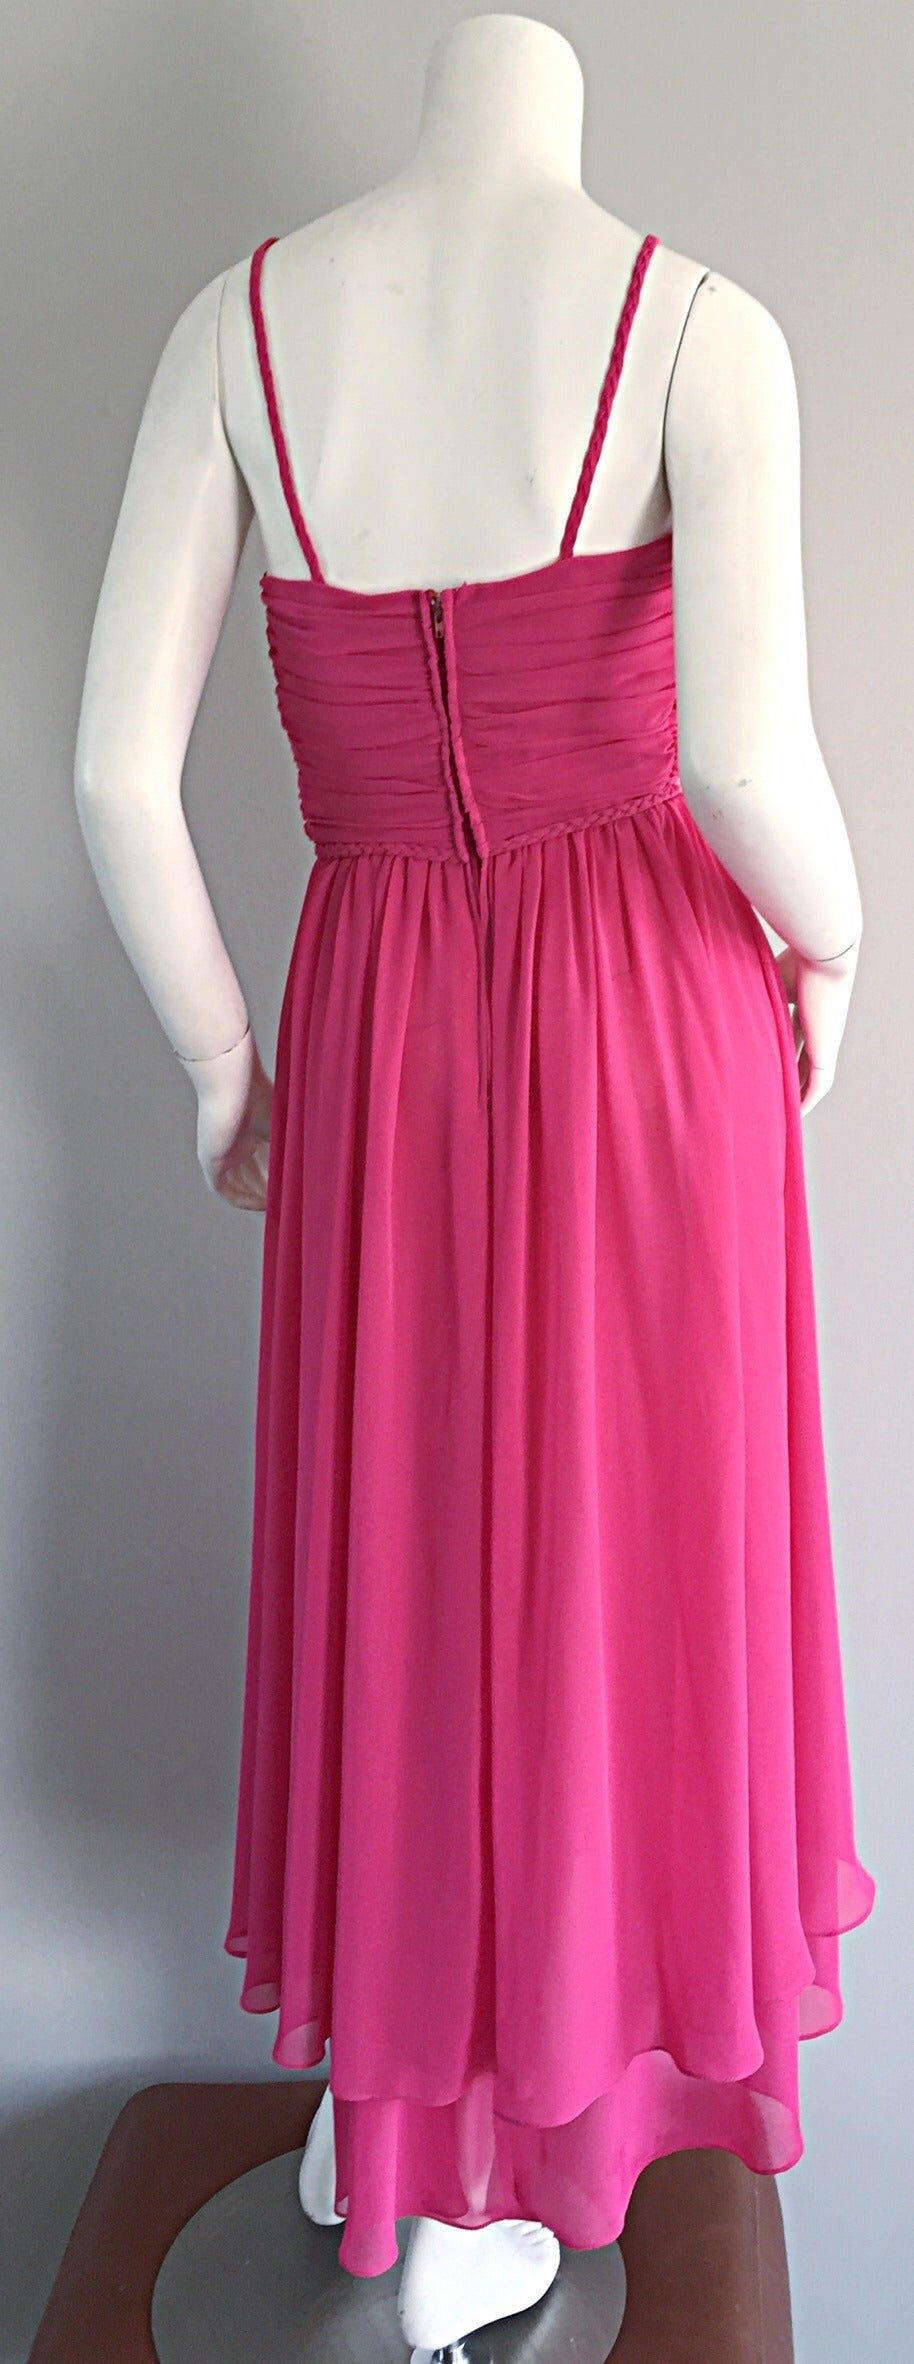 1970s Joy Stevens Hot Pink Vintage Flowy Grecian Disco Dress w/ Braided Details 4